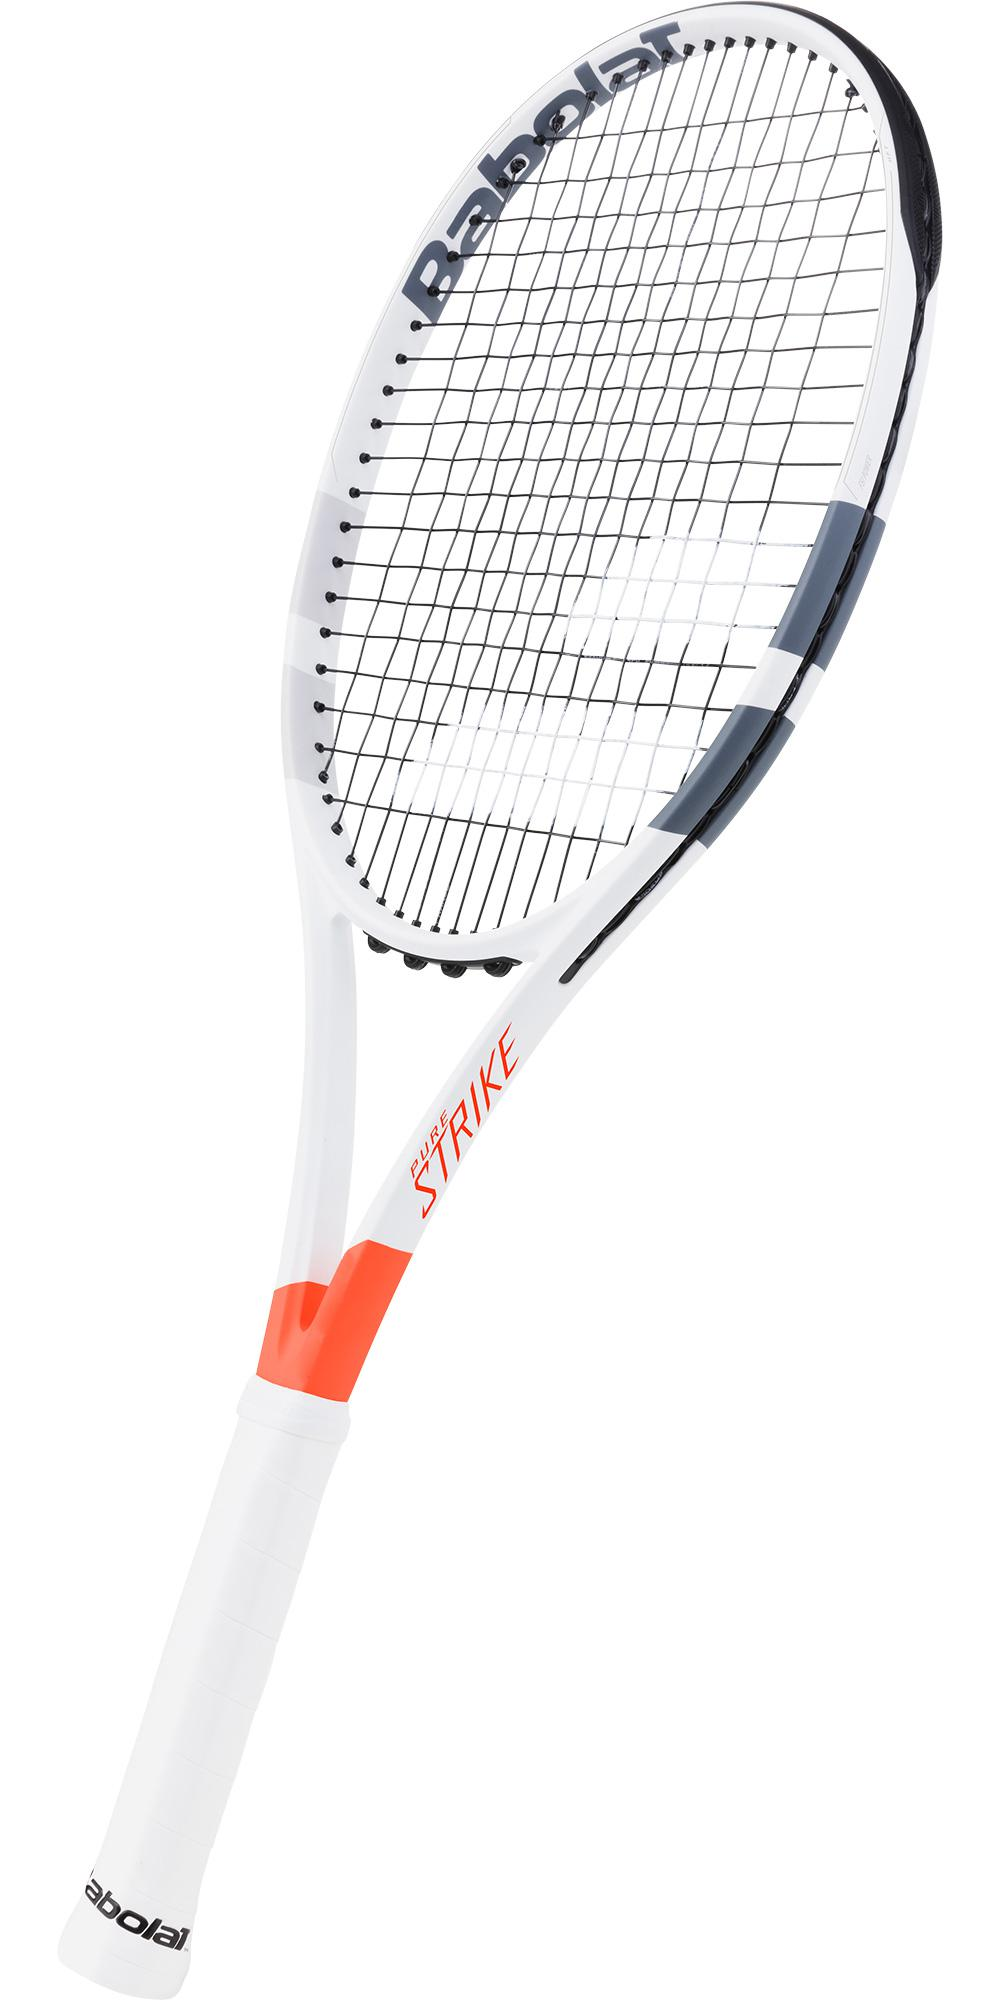 Babolat Pure Strike 16 19 Tennis 1267450 in addition 962760 Need Advice About Scrap Reprolabels Project 3 moreover Speedster S20 Fb 2011 furthermore Swan Drawing Step By Step in addition Evenflo Platinum Litemax 35 Review. on head sizes